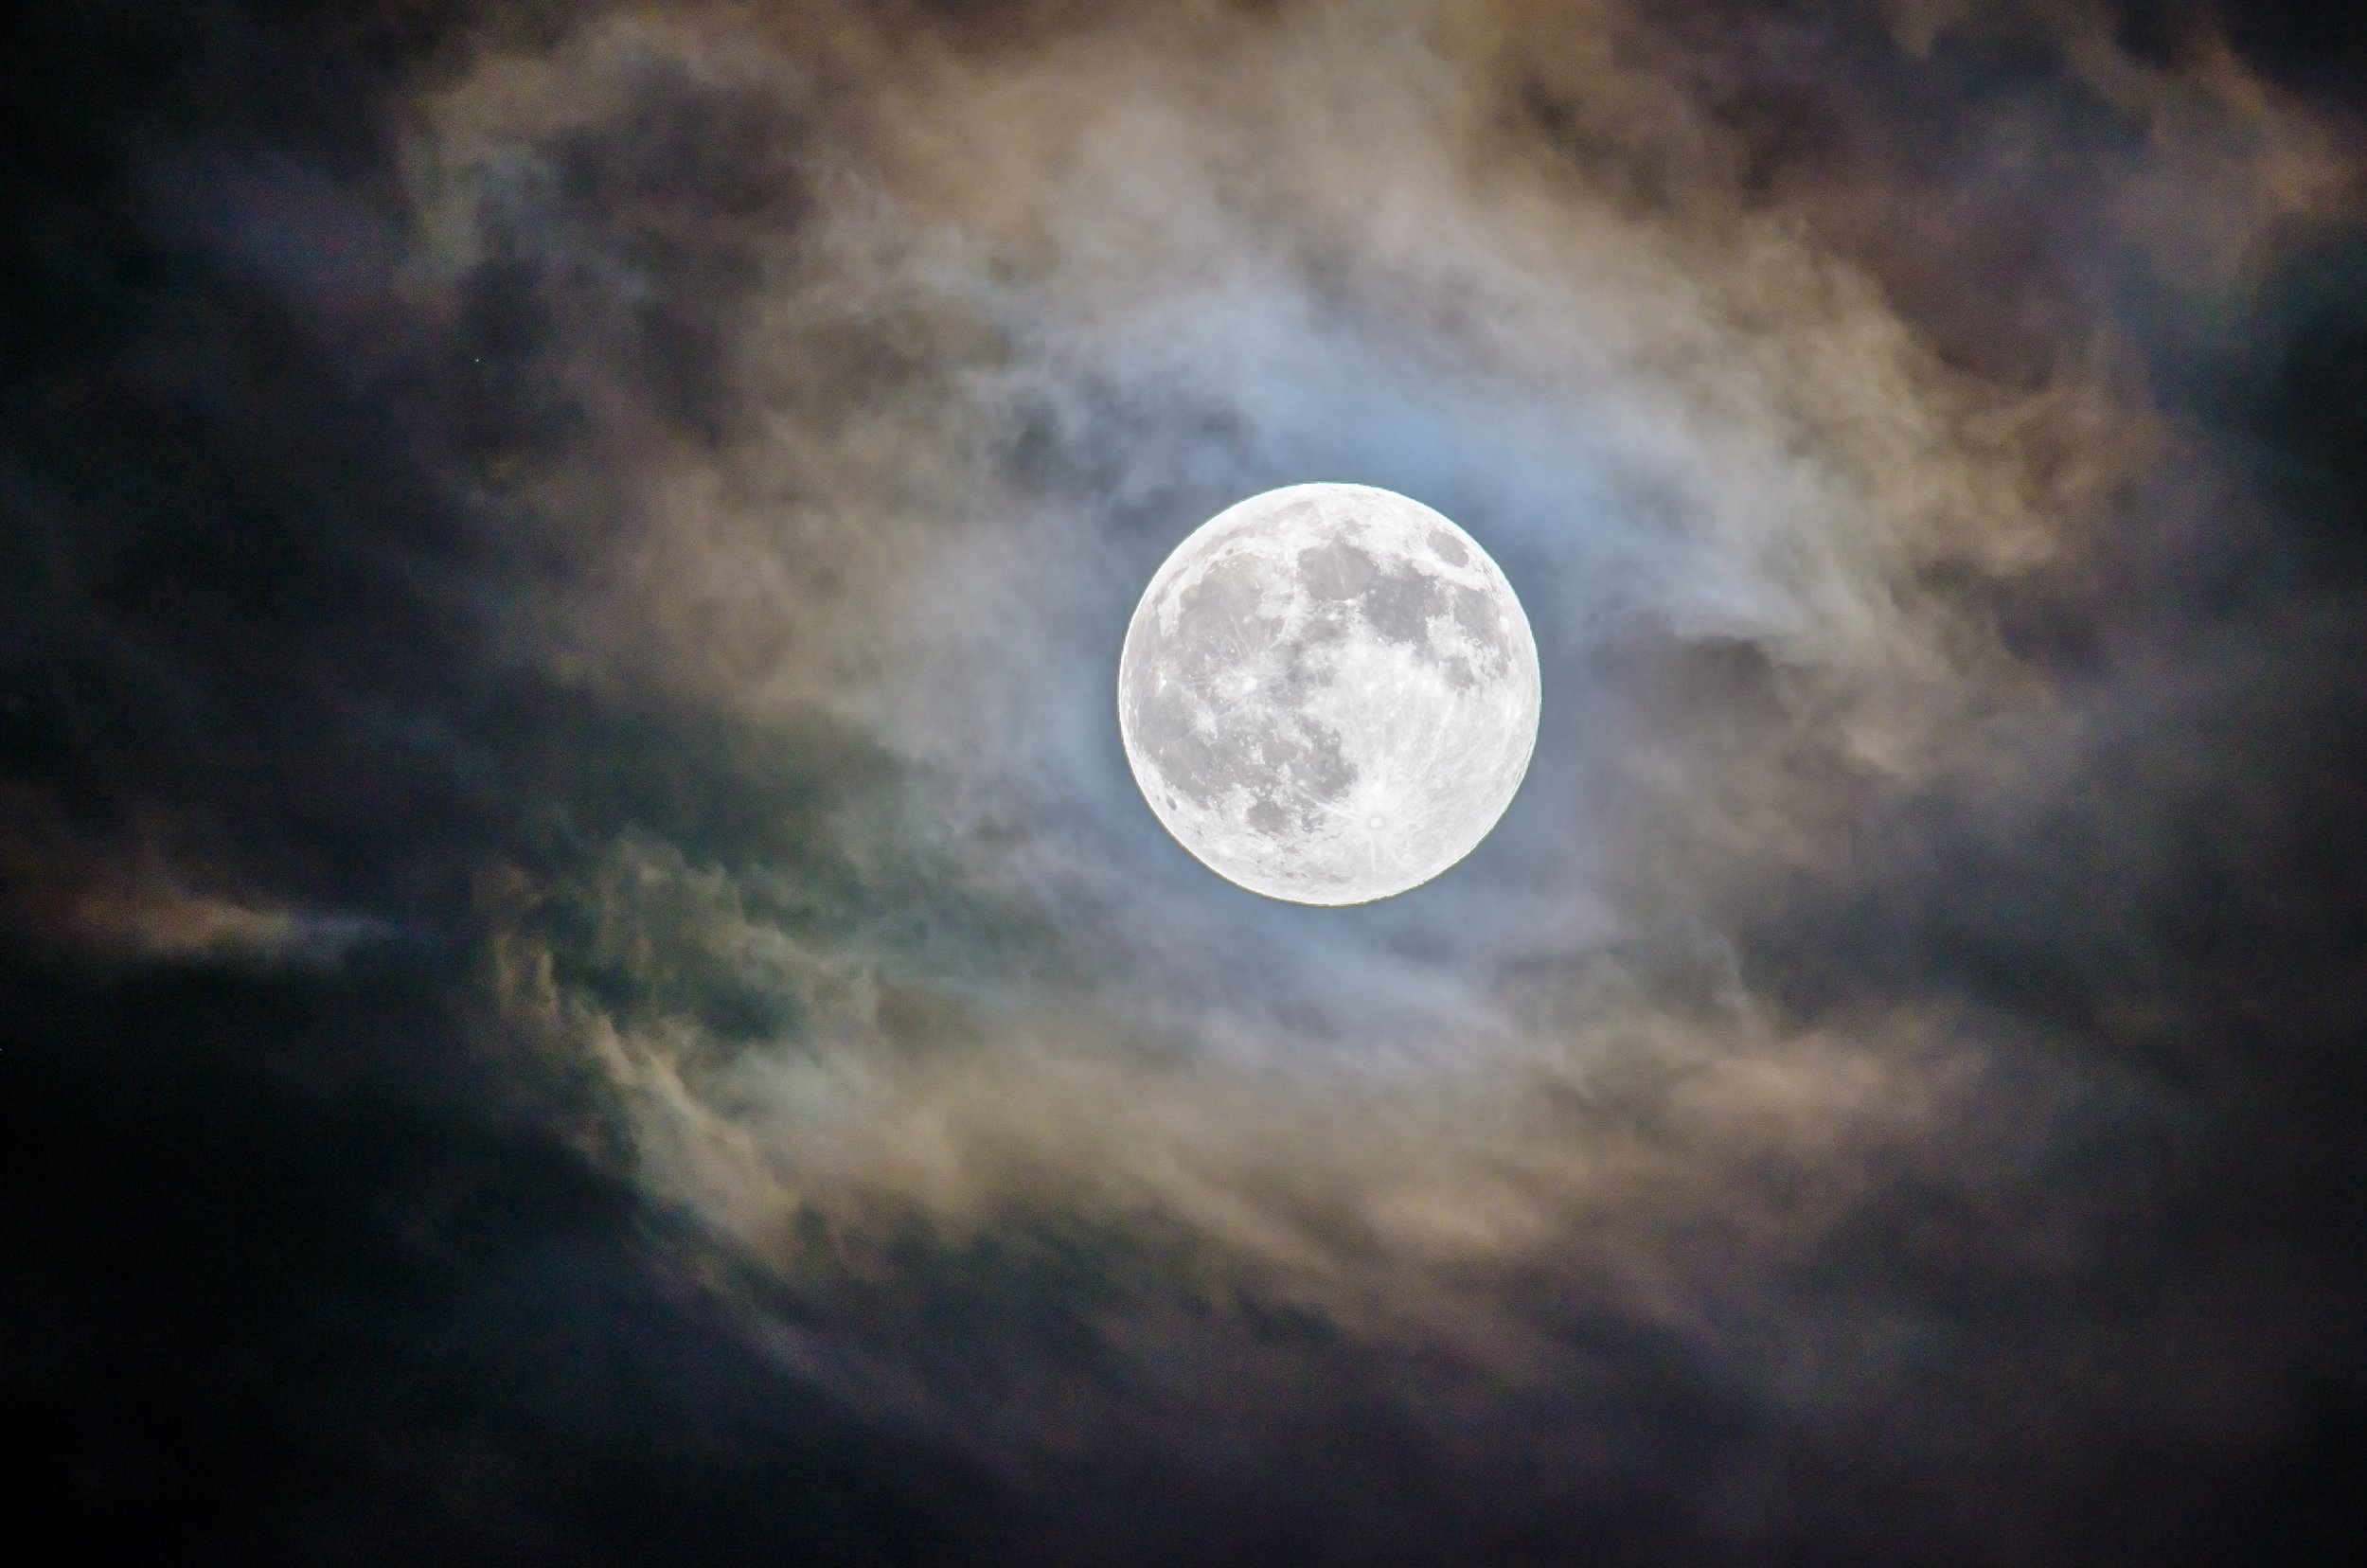 Full moon_Photo by Ganapathy Kumar on Unsplash.jpg